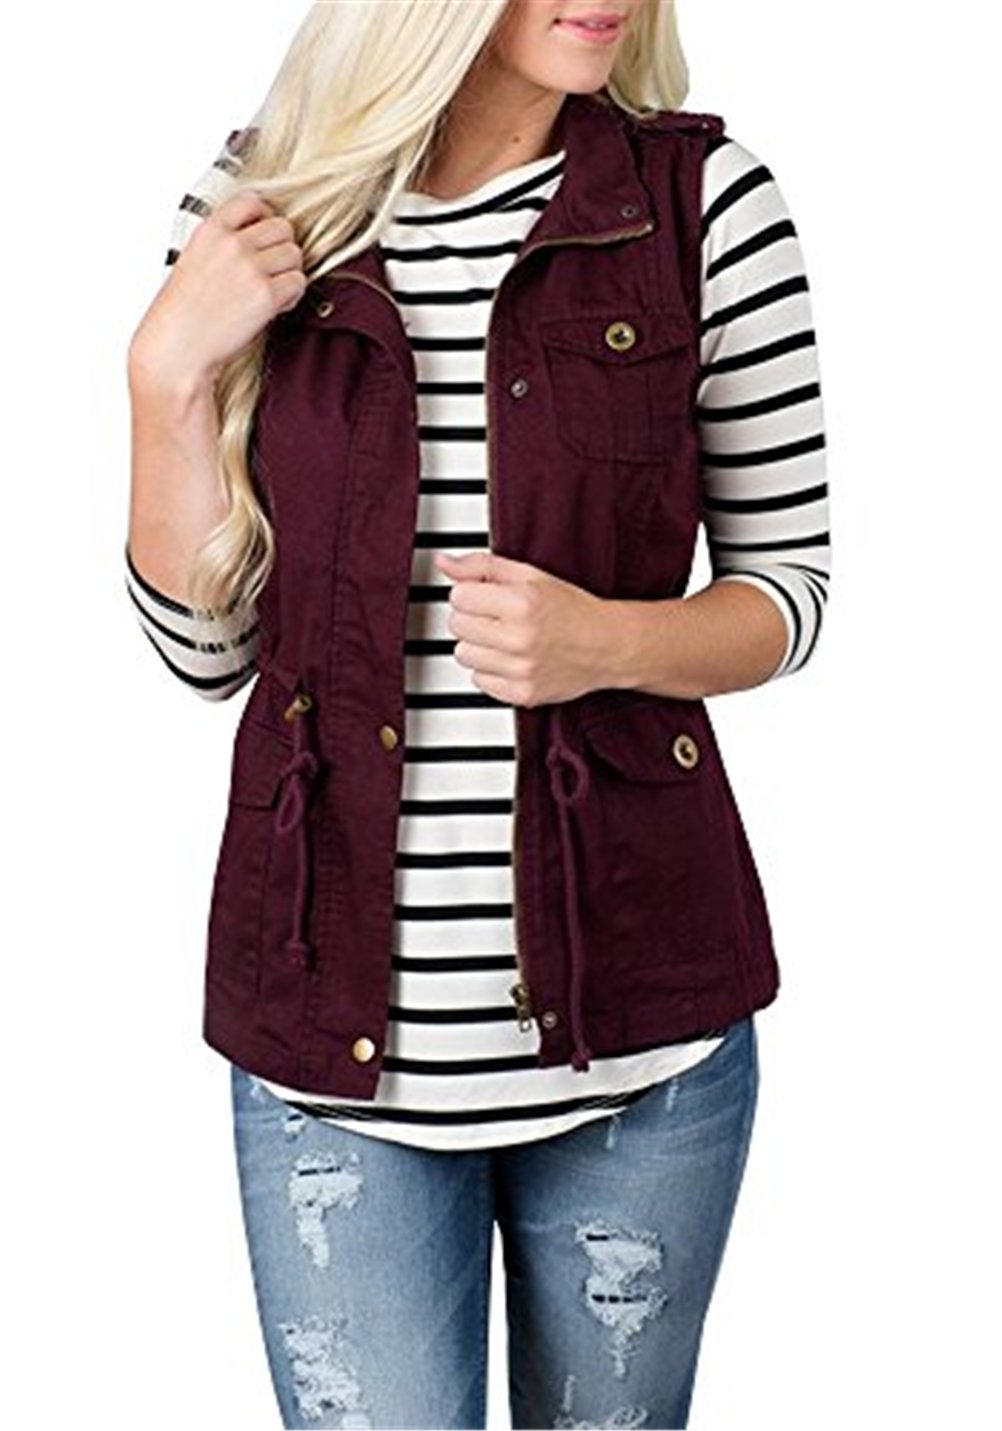 U-WARDROB Sleeveless Military Lightweight Warm Vest Jacket with Pocket for Women Burgundy XXL by U-WARDROB